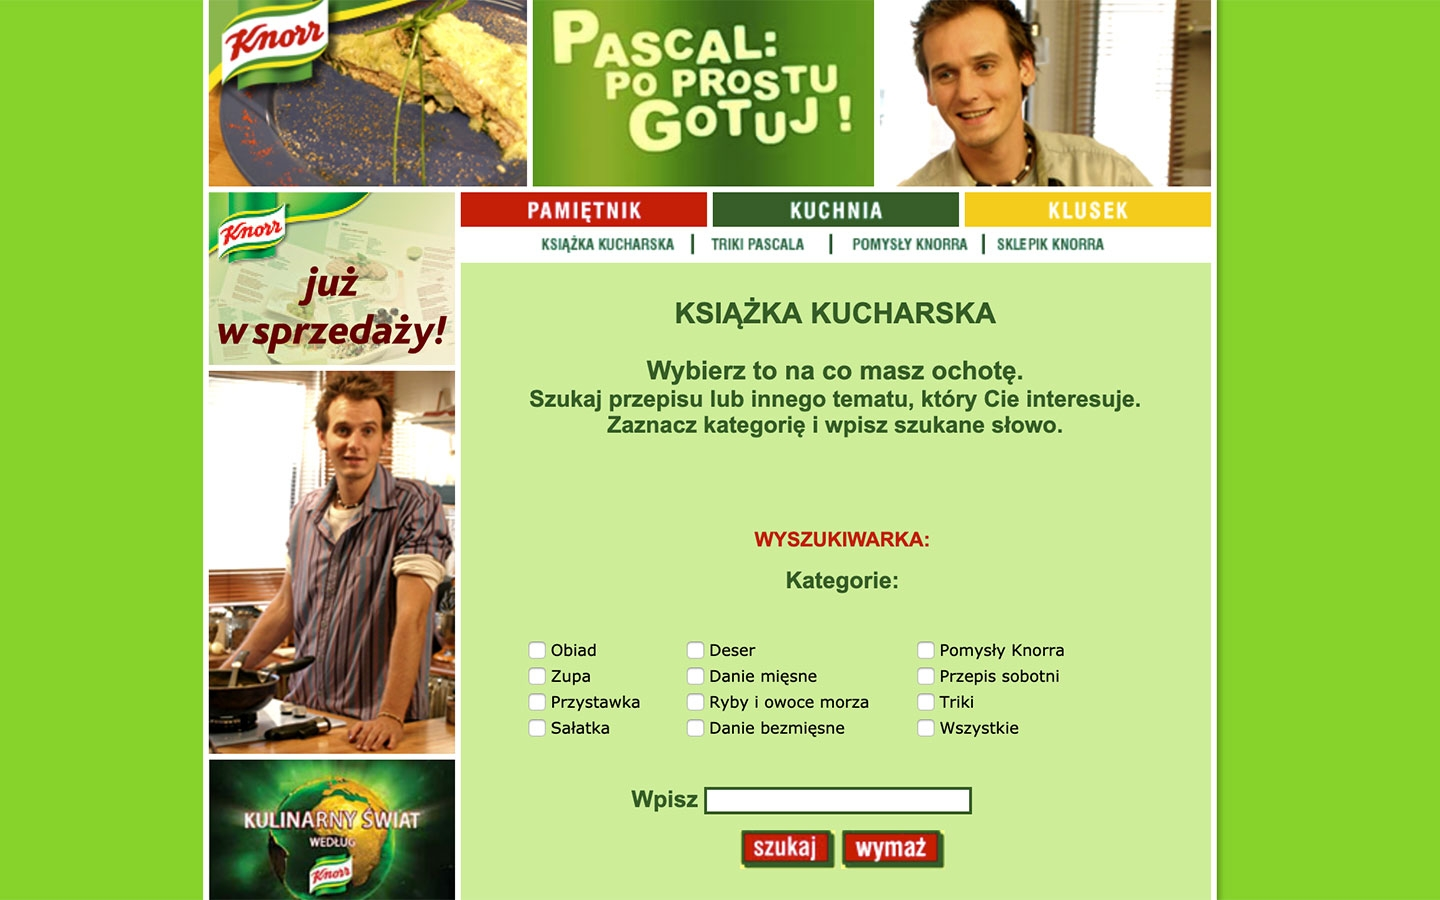 Pascal: Po Prostu Gotuj! | poprostugotuj.onet.pl | 2004 (Screen Only 06) © echonet communication